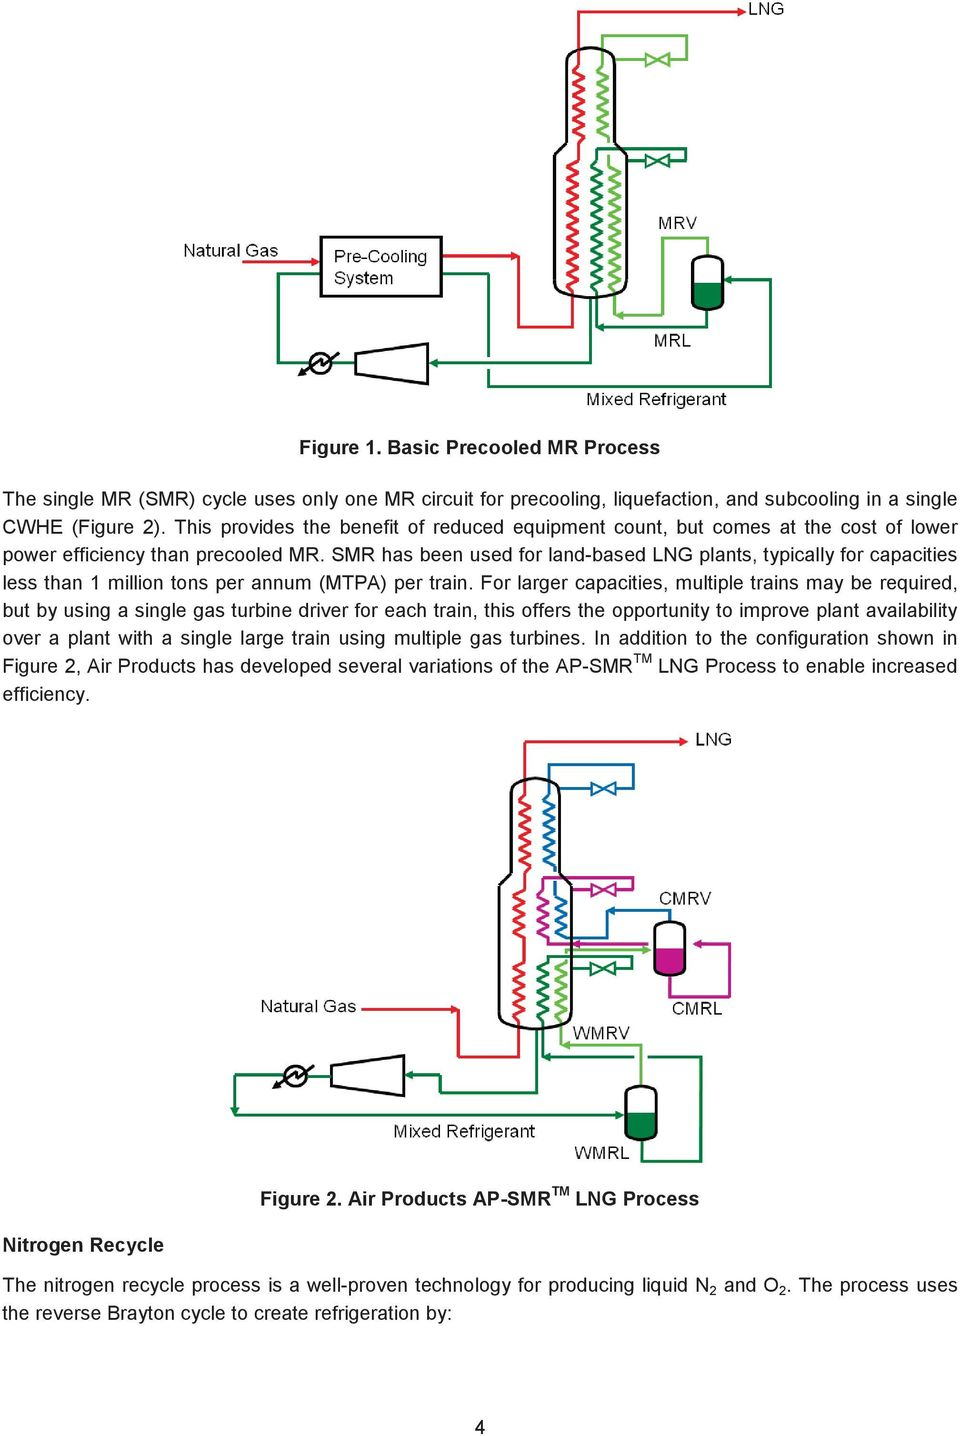 Natural Gas Liquefaction Technology For Floating Lng Facilities Pdf Process Flow Diagram Plant Smr Has Been Used Land Based Plants Typically Capacities Less Than